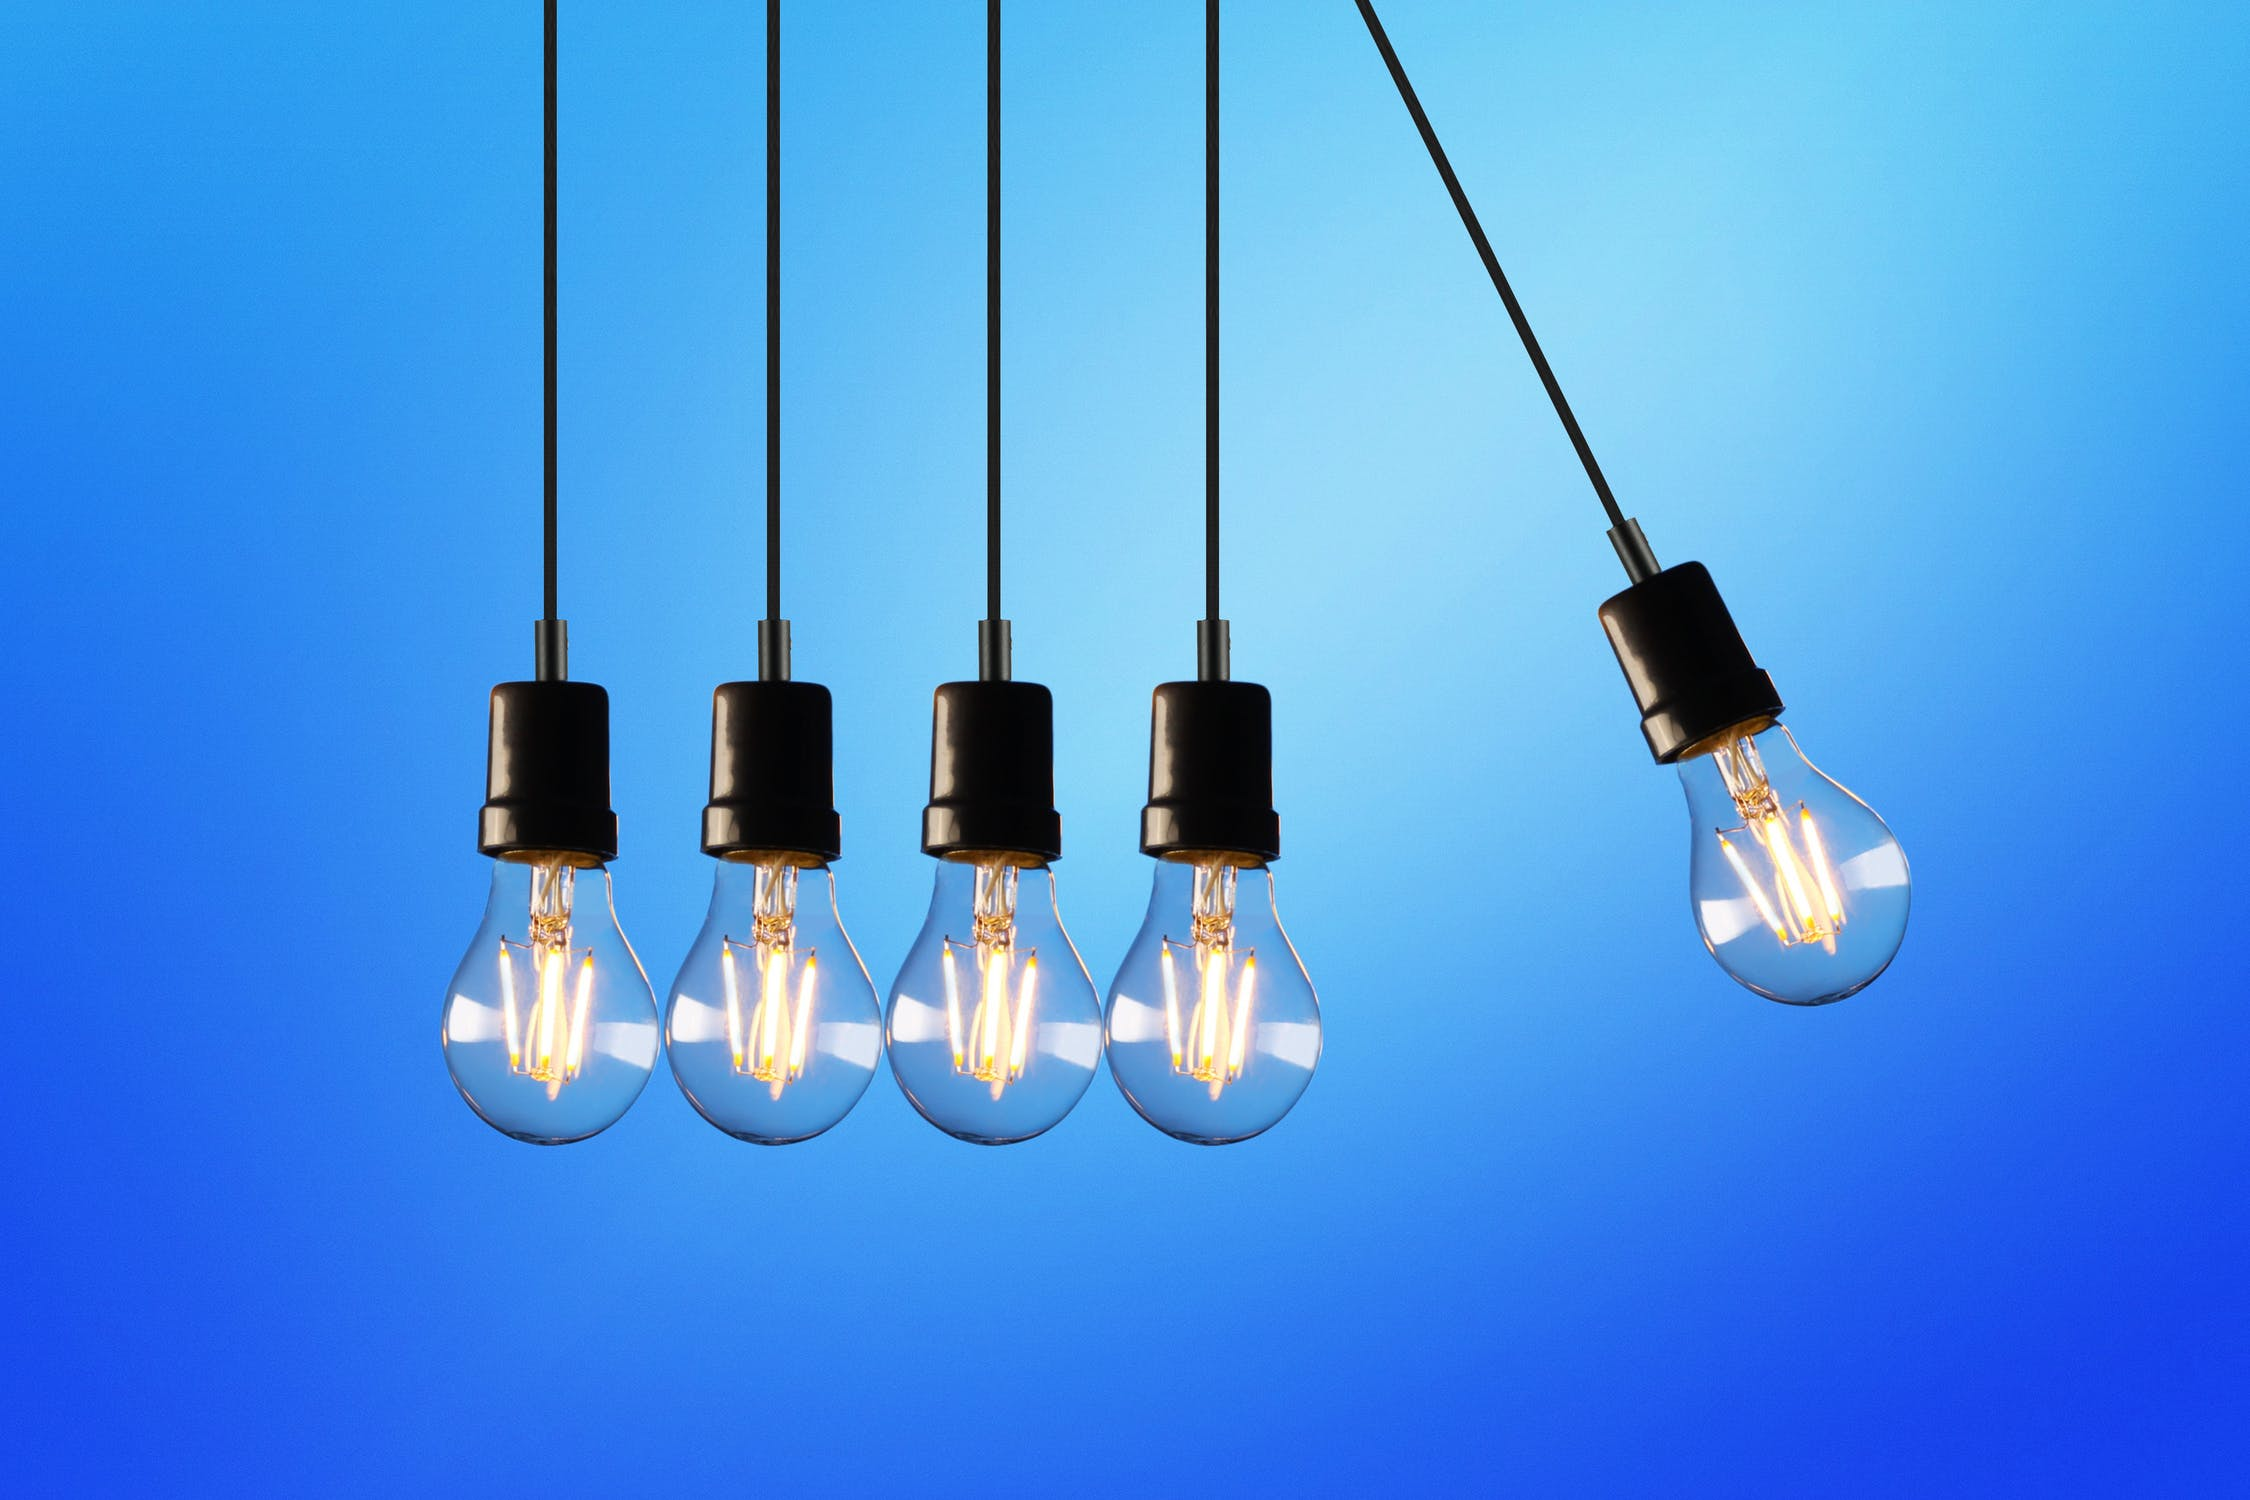 Five incandescent bulbs hanging and swinging like newton's cradle. Photo by pexels user Rodolfo Clix. Used courtesy of pexels.com